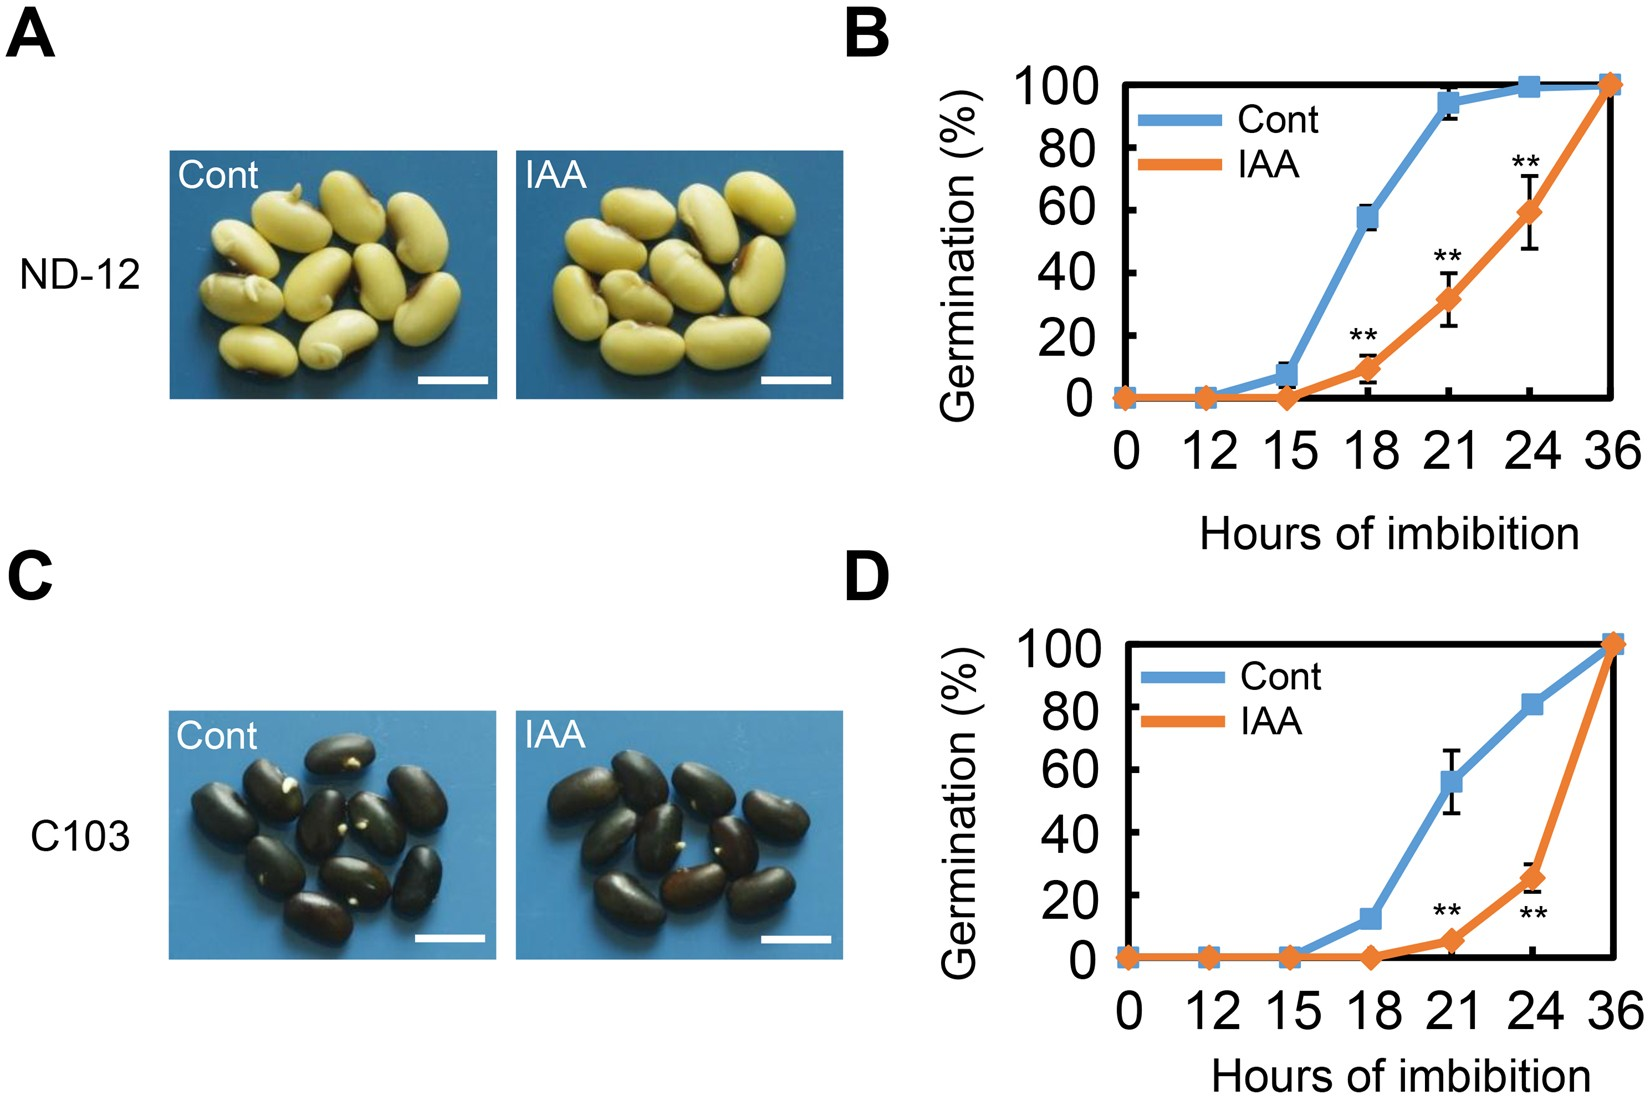 Exogenous Auxin Represses Soybean Seed Germination Through Diagram It Works From Decreasing The Gibberellin Abscisic Acid Ga Aba Ratio Scientific Reports